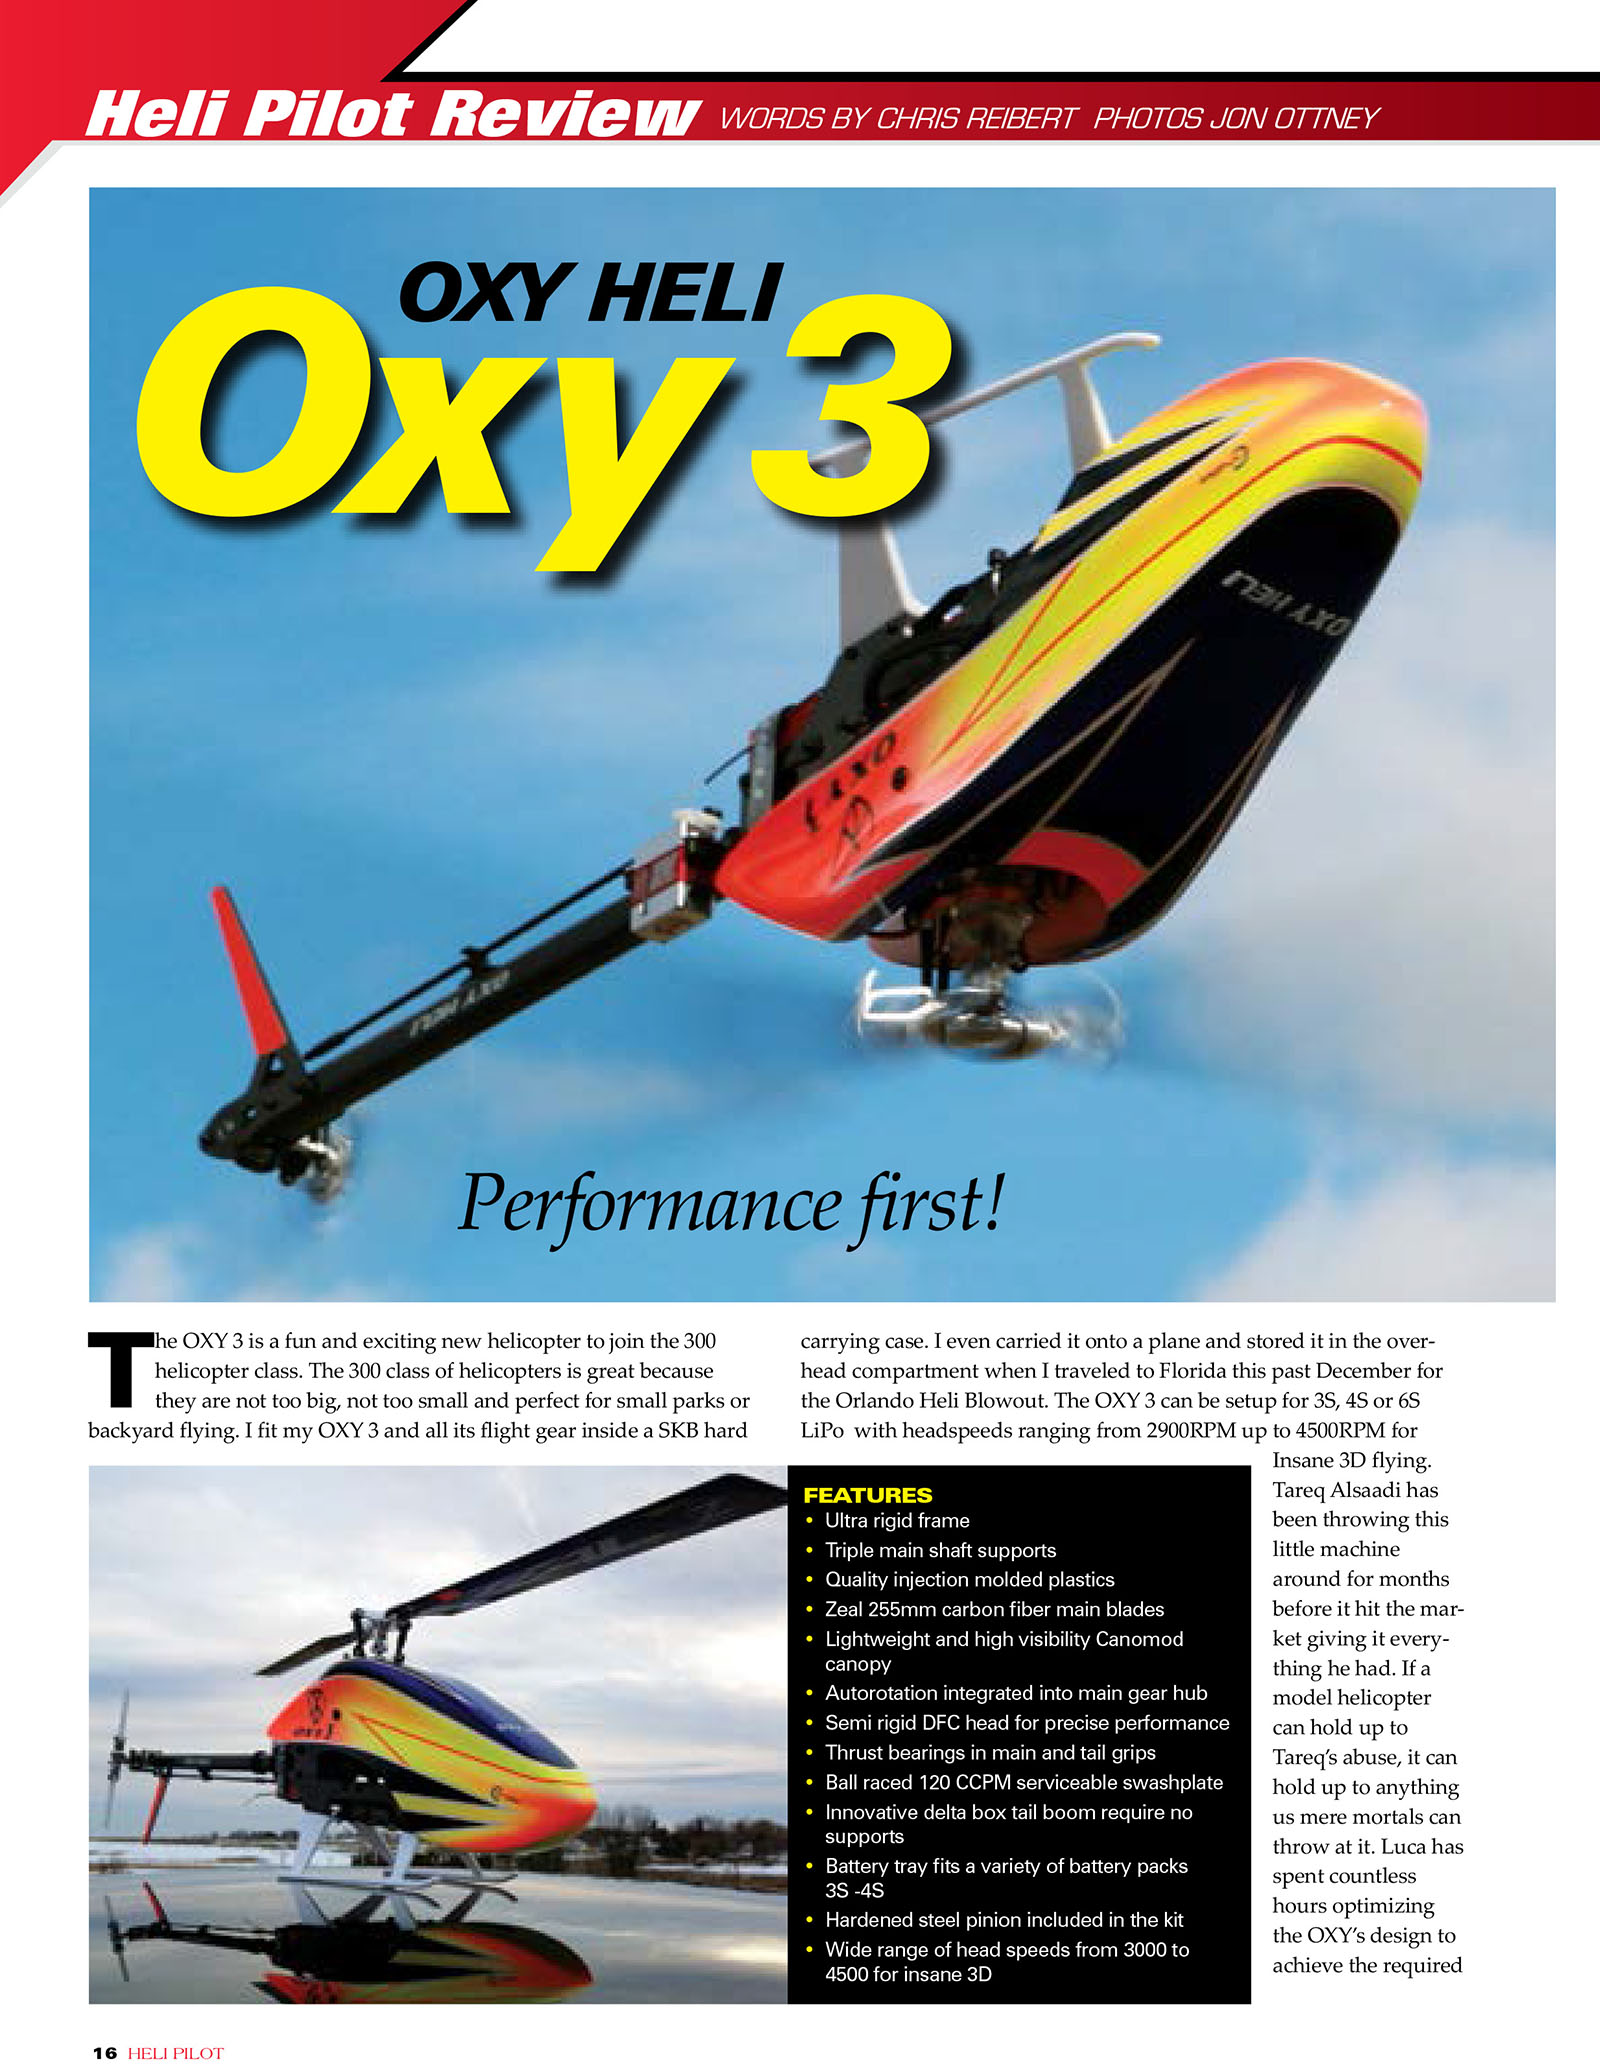 oxy 3 helicopter kit u2039 oxy helicopter